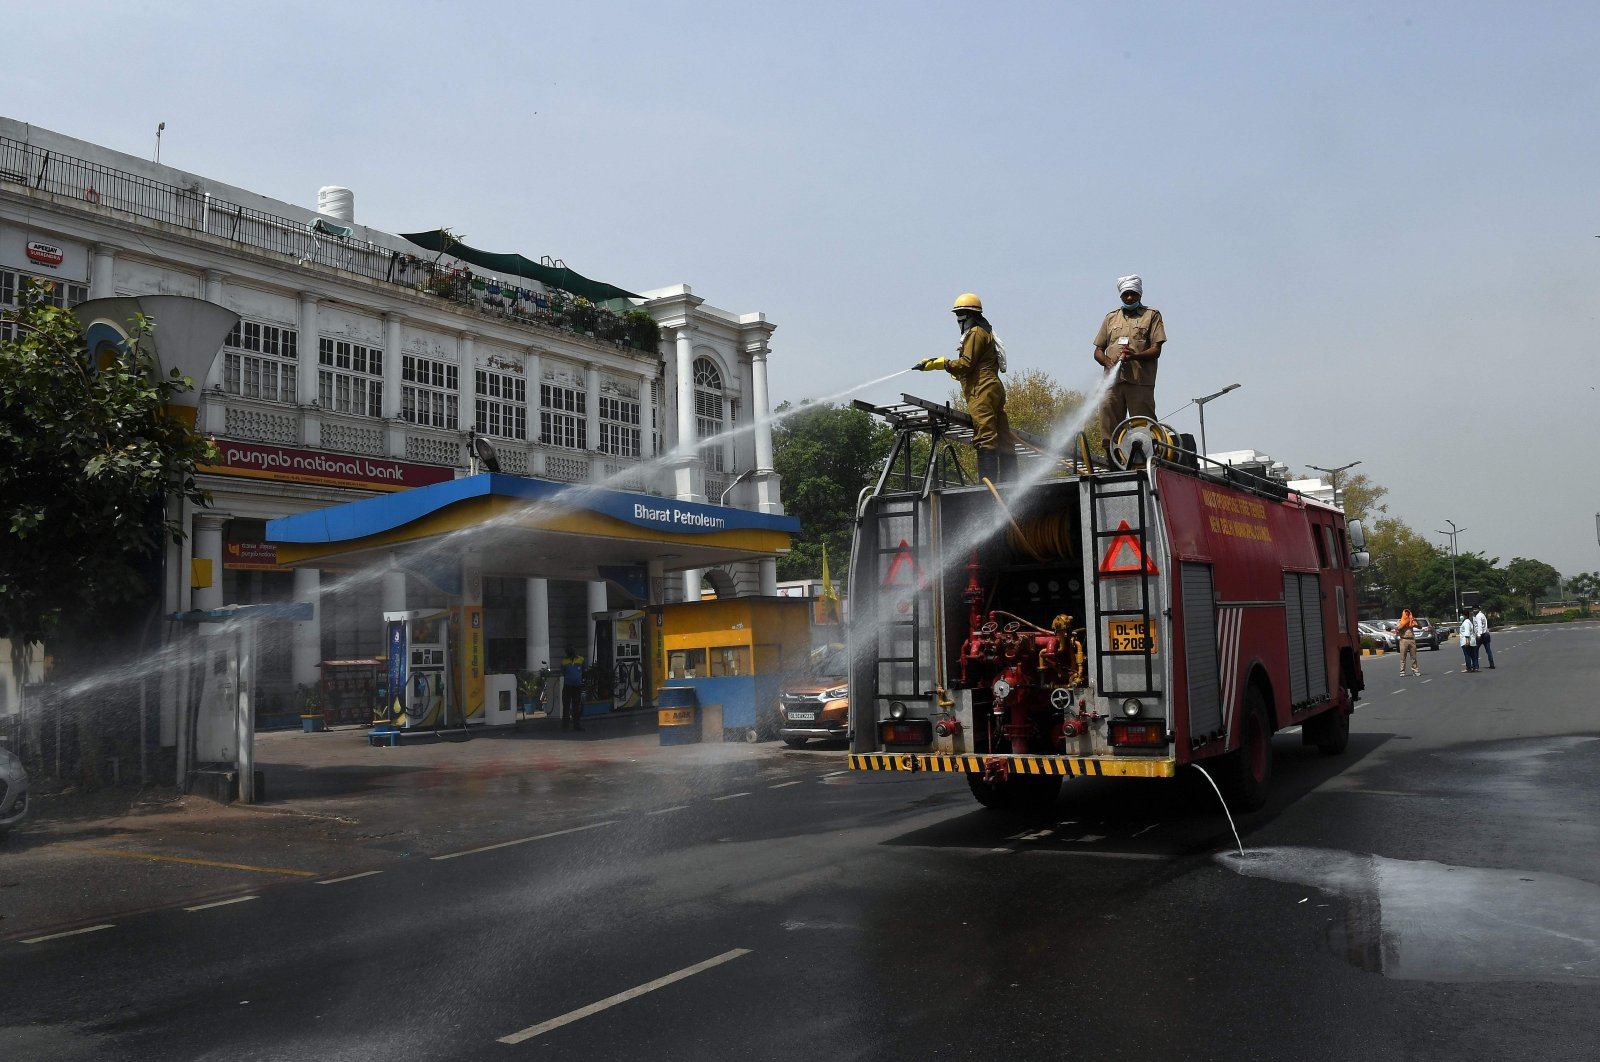 Delhi Fire Service (DFS) personnel spray disinfectant chemicals along a road during a government-imposed nationwide lockdown as a preventive measure against the COVID-19 coronavirus in New Delhi on April 16, 2020. (AFP Photo)